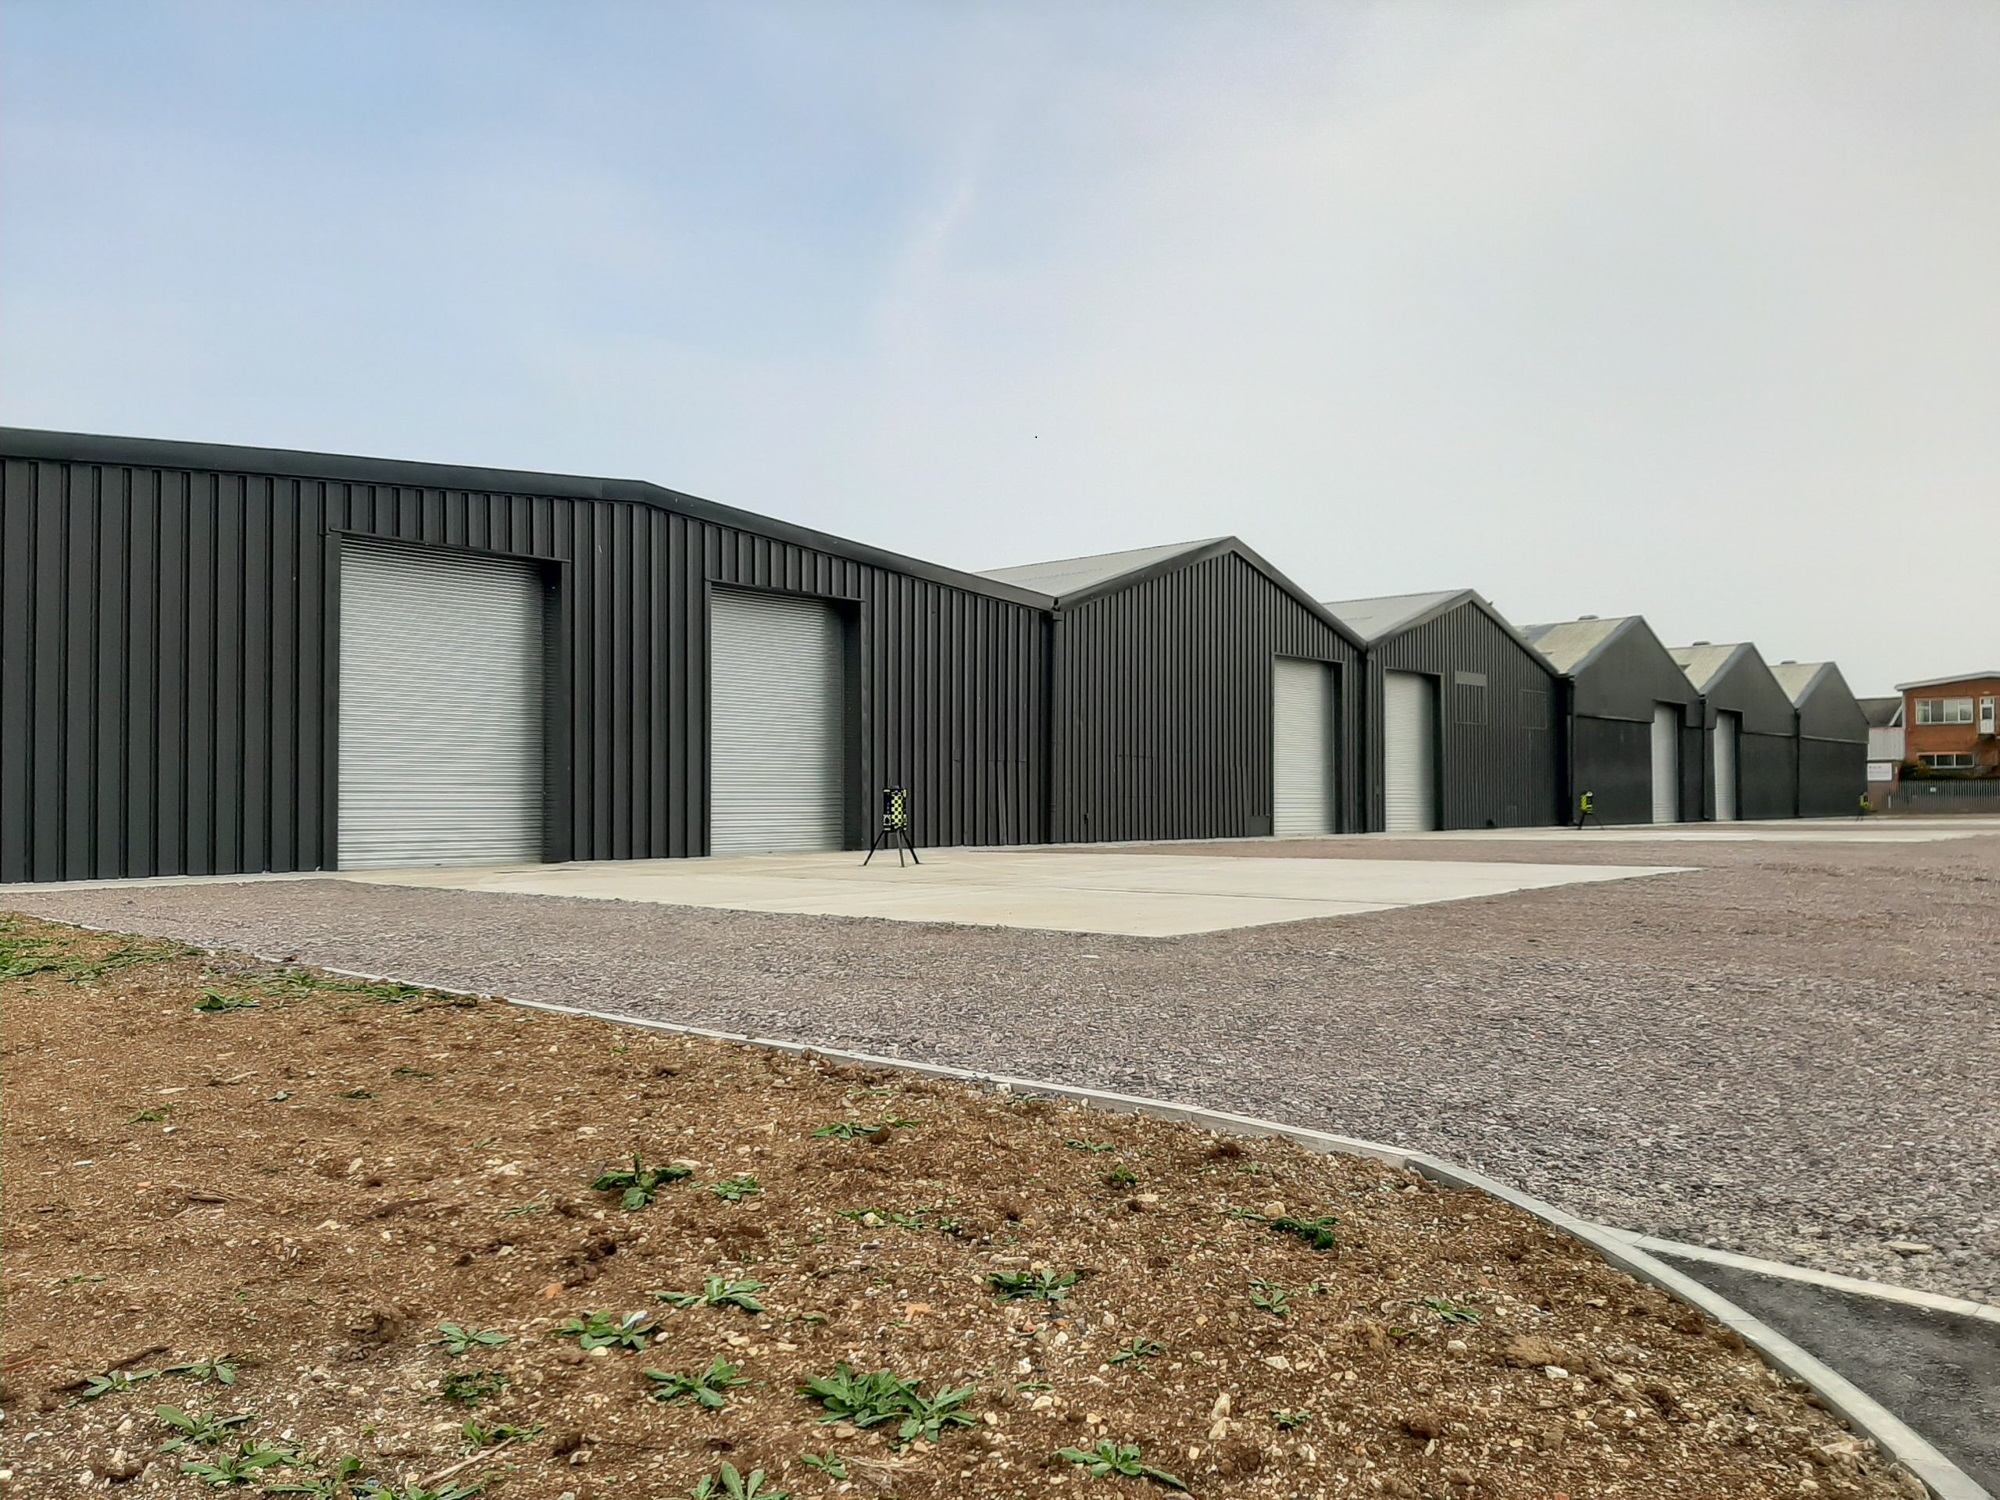 a row of large black warehouses with tarmac ground